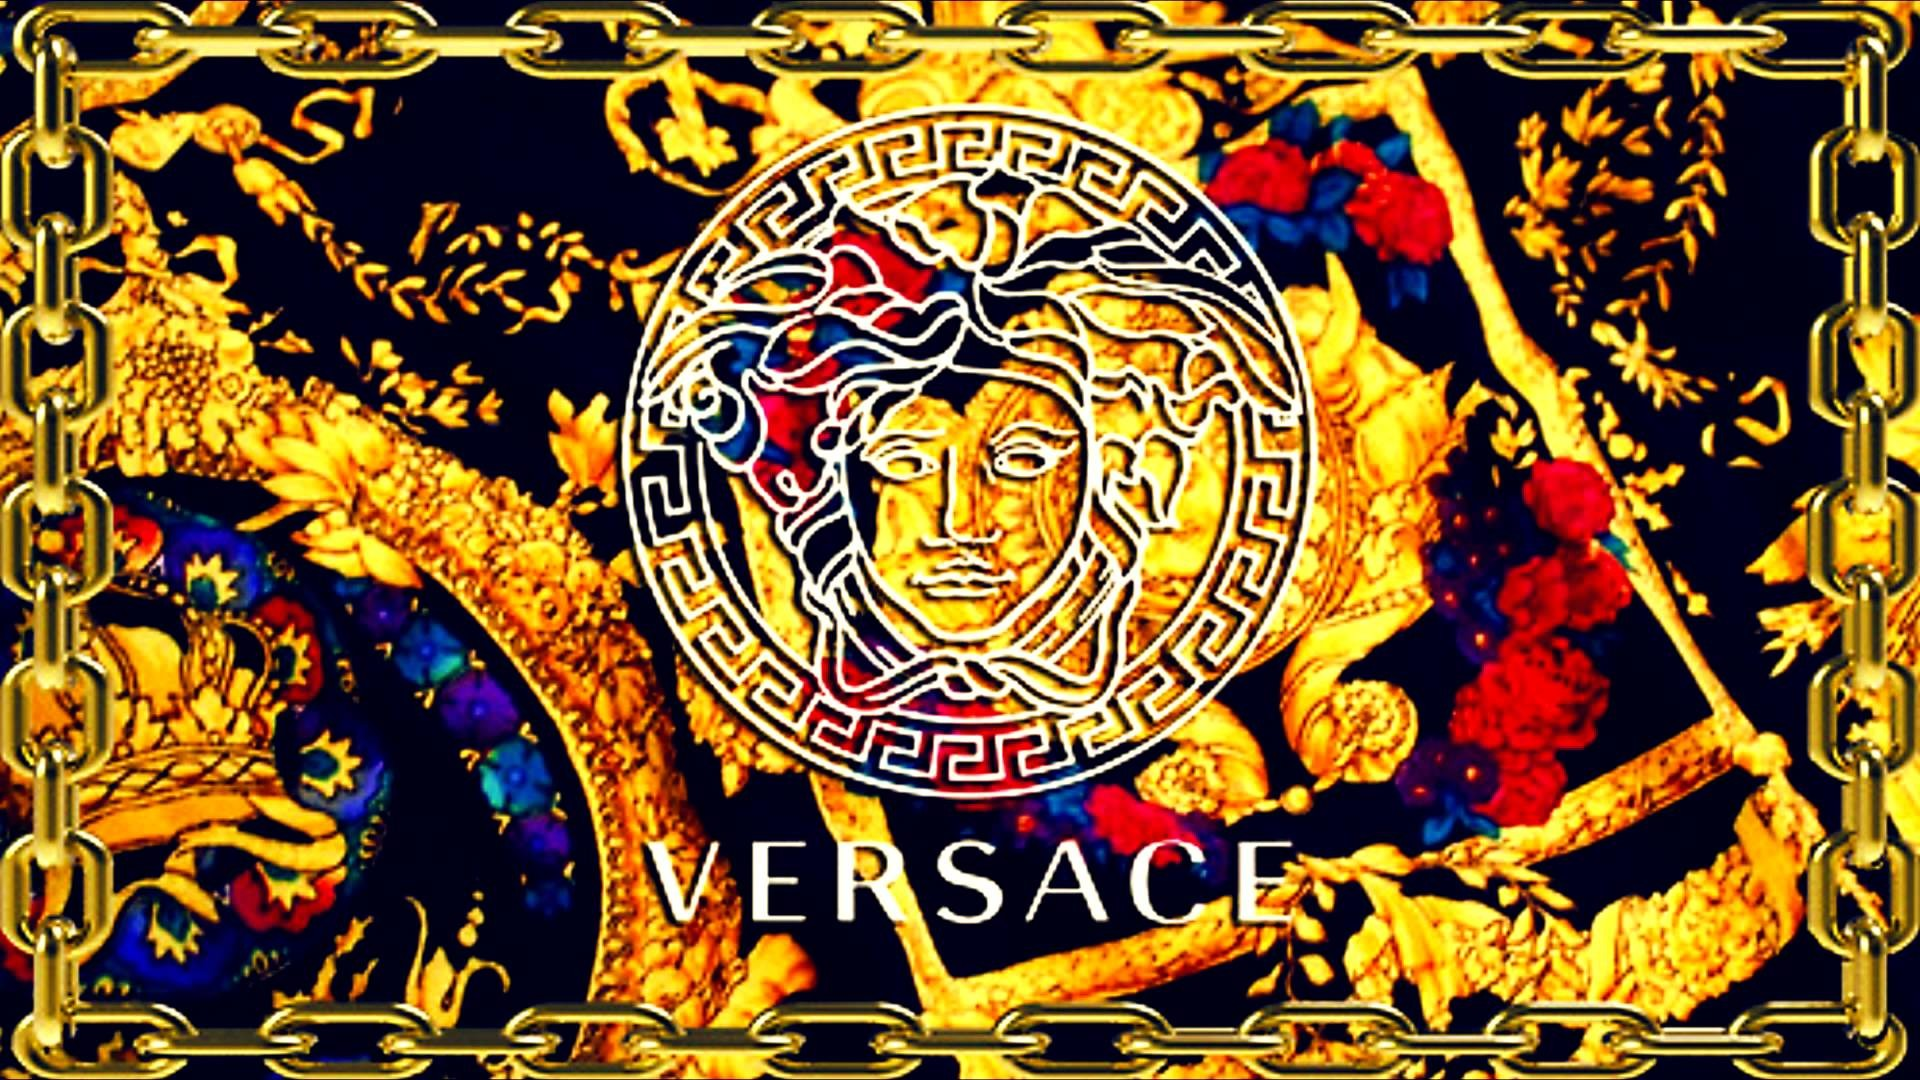 Versace Wallpapers HD | HD Wallpapers, Backgrounds, Images, Art ..